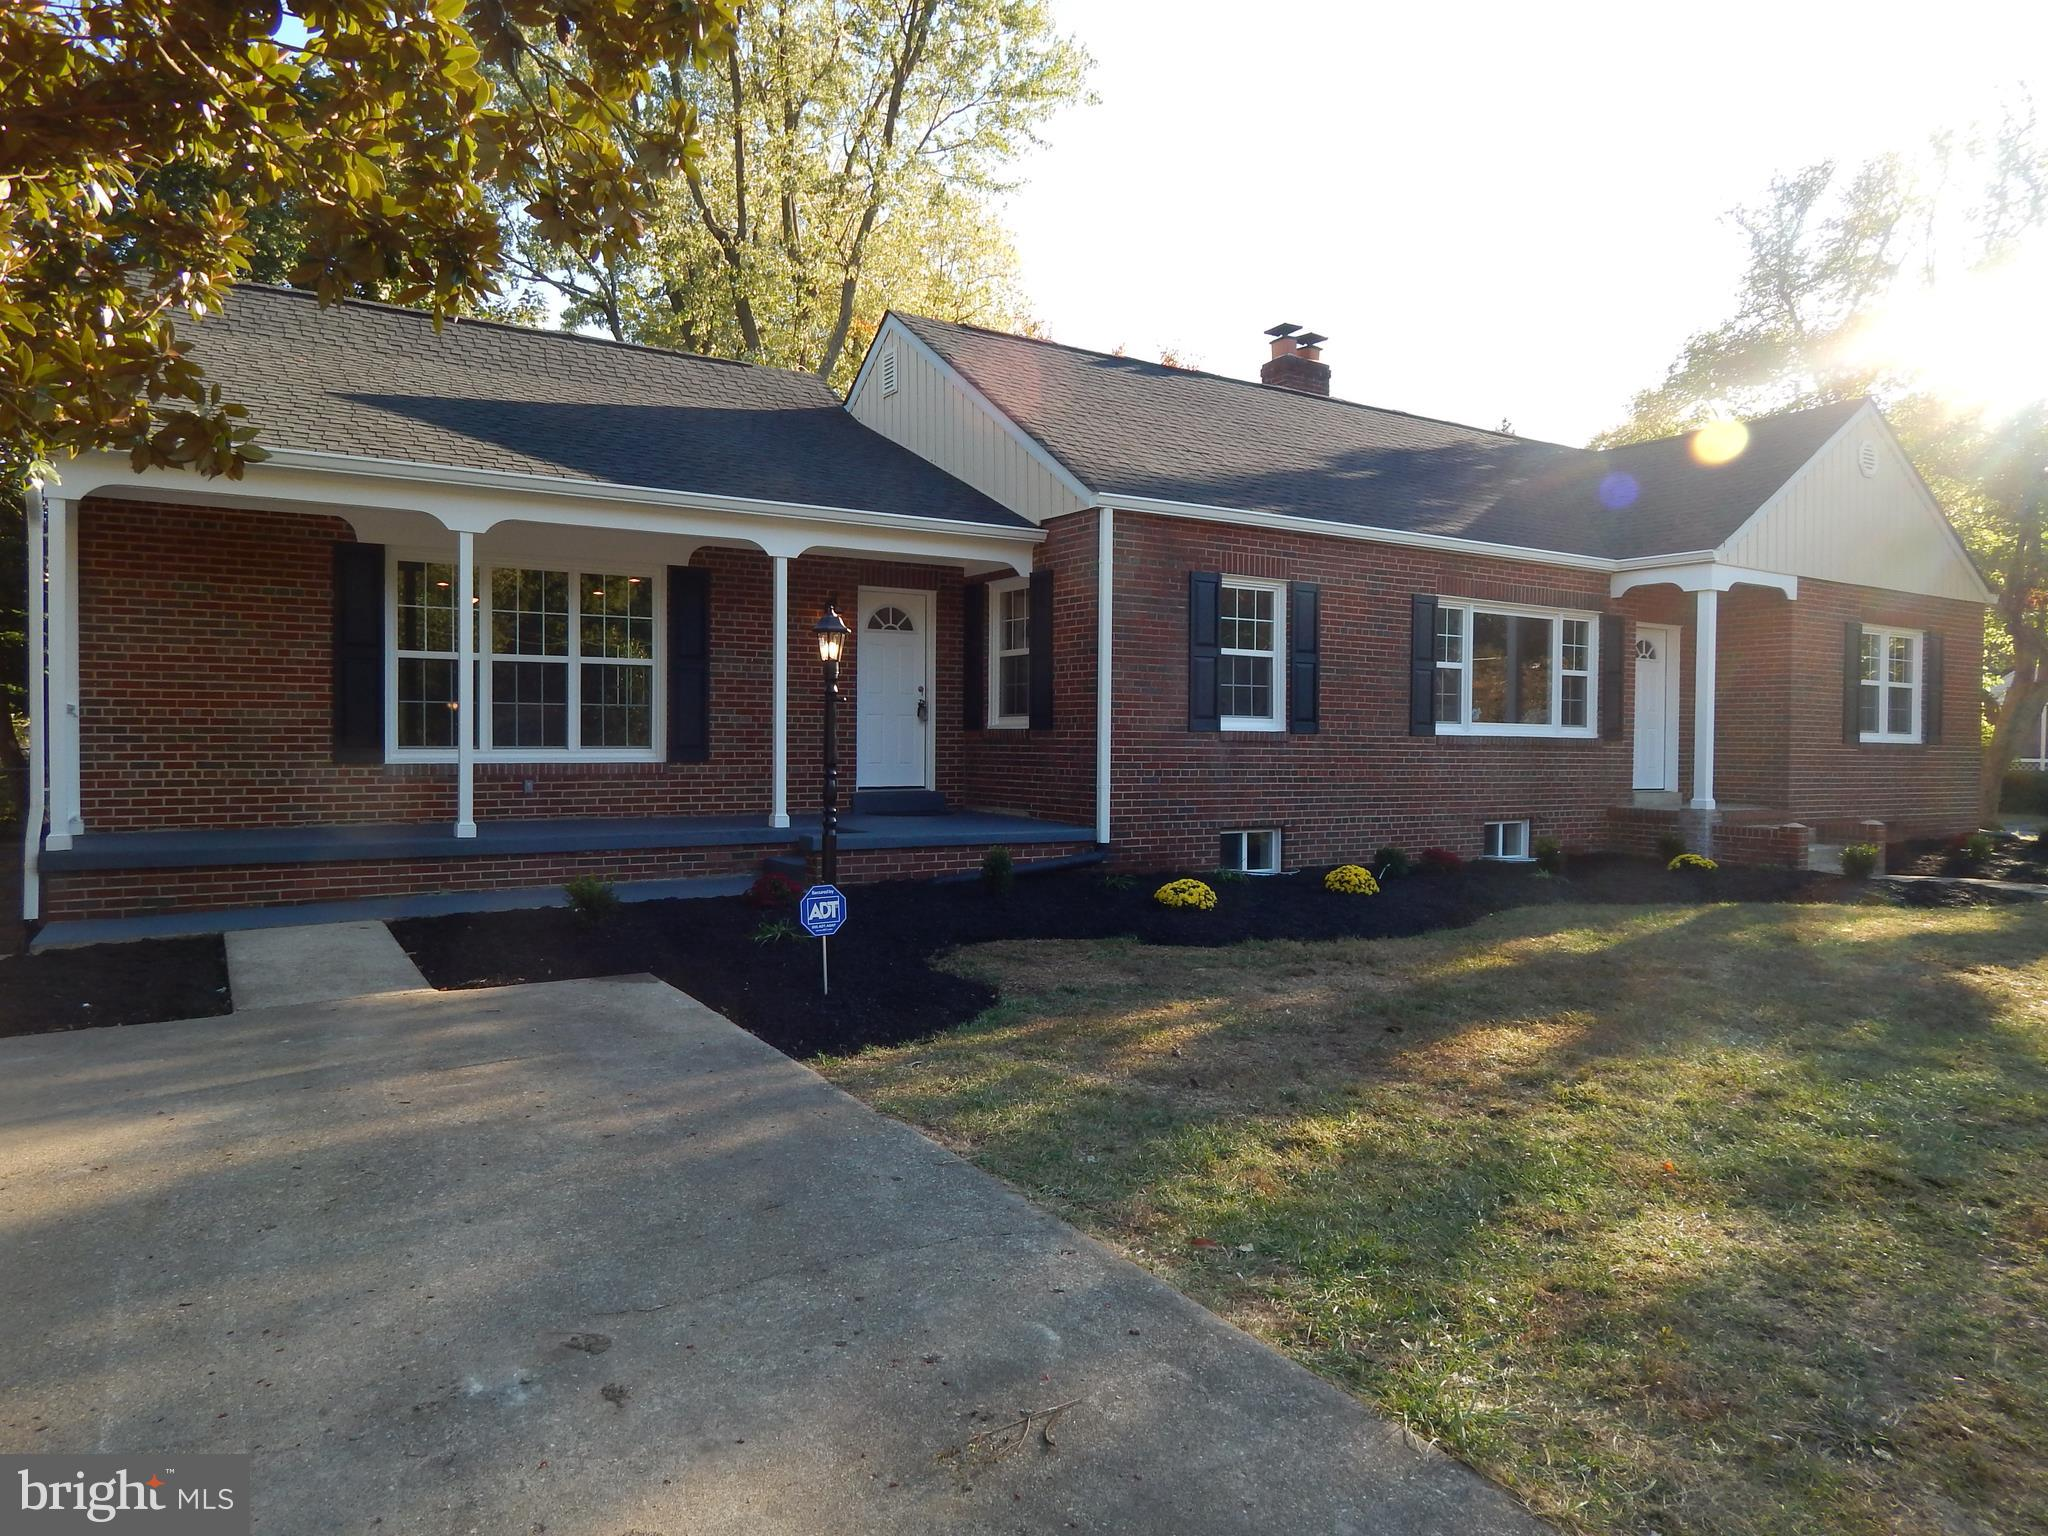 5013 HENDERSON ROAD, TEMPLE HILLS, MD 20748